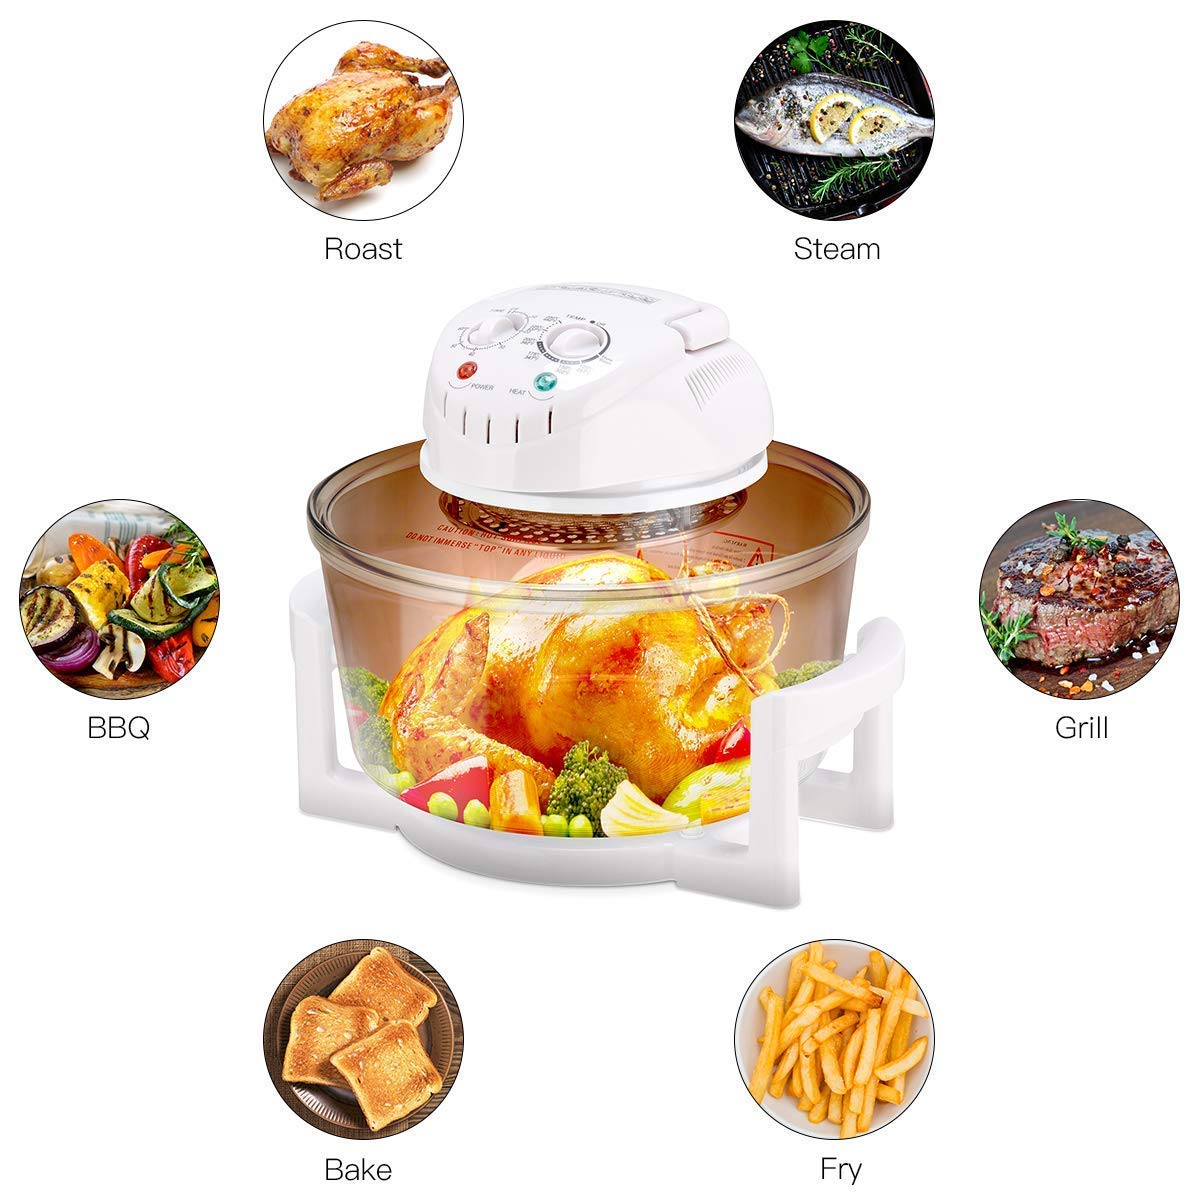 Enhanced Halogen Oven, 1400W 12L Air Fryer with Self-Cleaning Function, Adjustable Temperature and Timer, Including Extension Ring for 17L Rack Tray, High Rack, Low Rack und Tong by ankt777